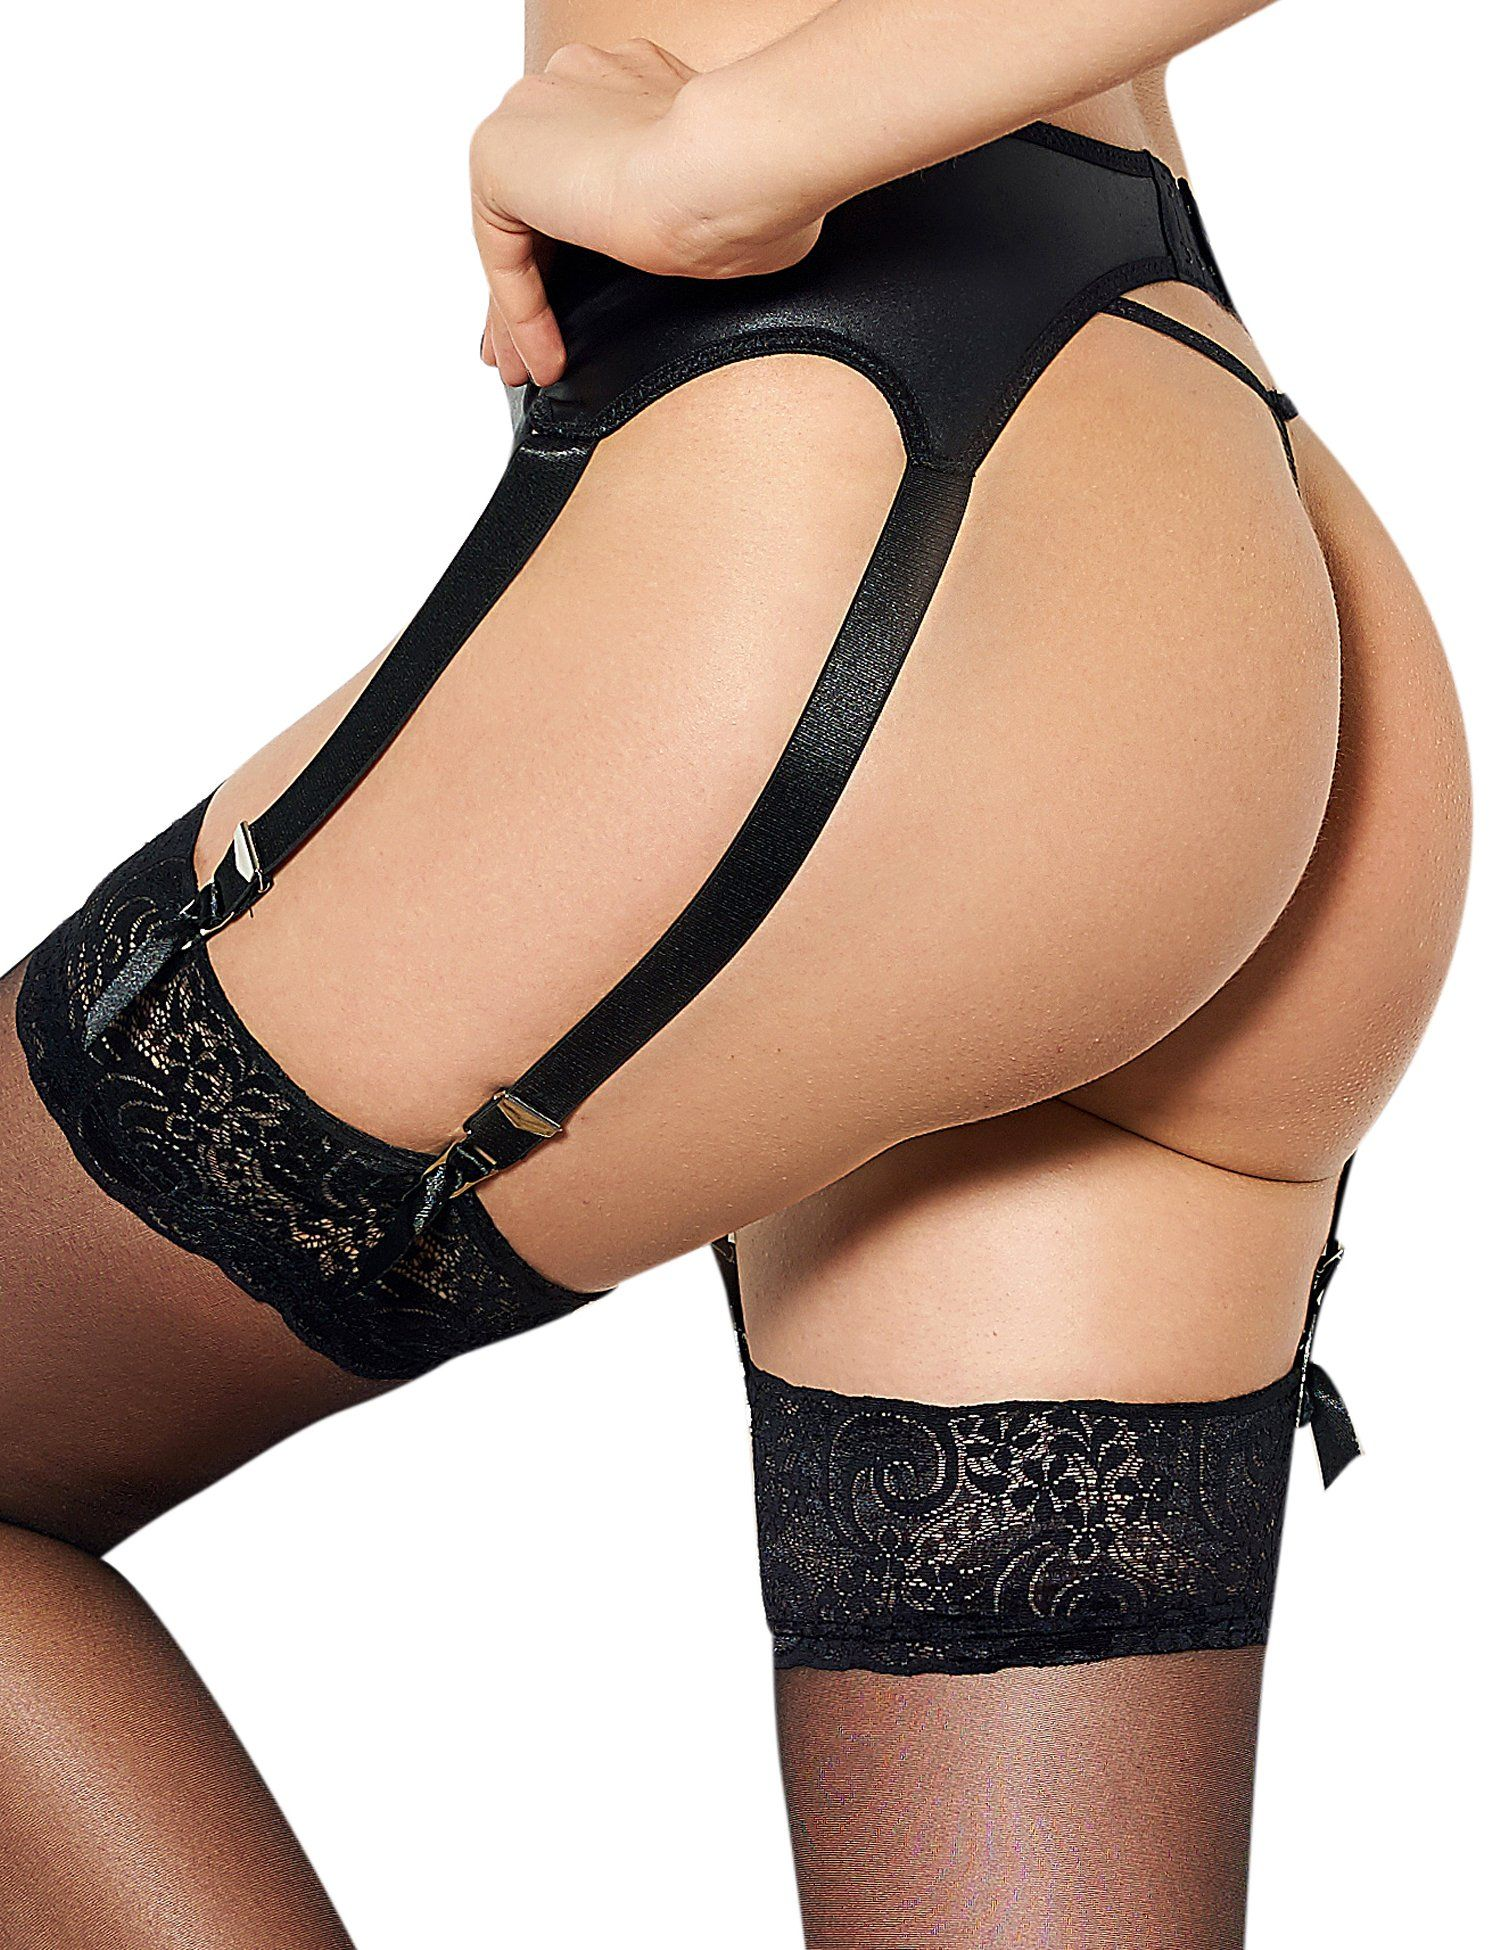 2e1657a1e59 comeondear Women Plus Size Highwaisted Faux Leather Black Garter Belt Set  for Stocking Black 6 X Large   US 1820     Click photo to examine more  details.